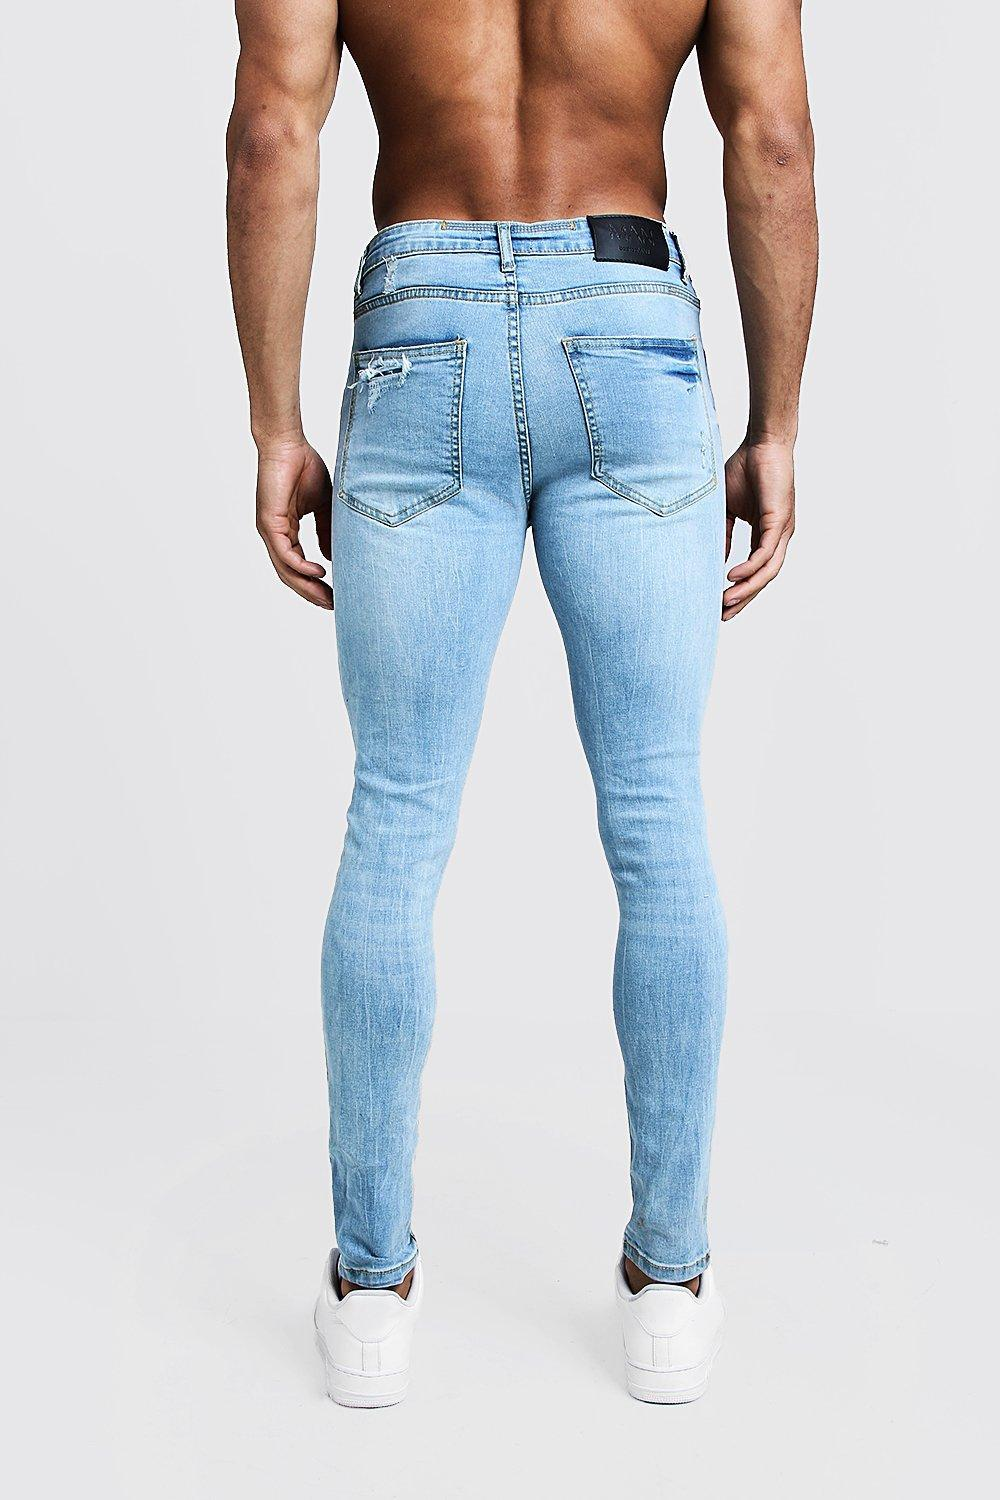 256b0618cec47 BoohooMAN - Blue Spray On Skinny Jeans With Distressed Knees for Men - Lyst.  View fullscreen